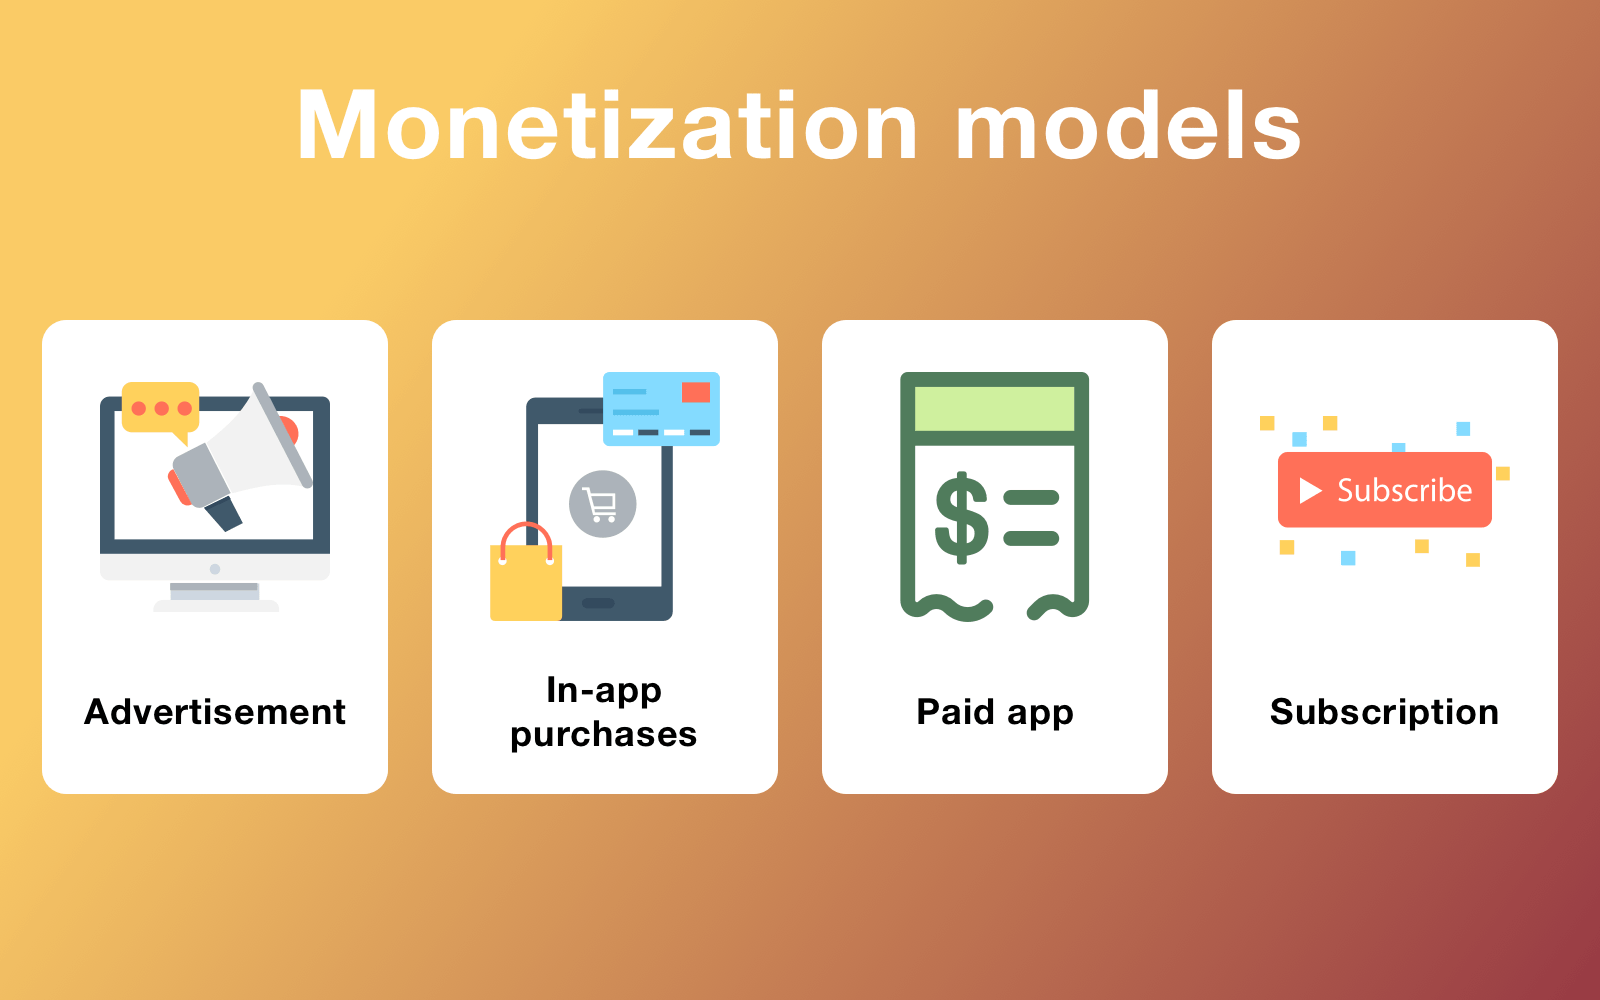 Monetization models that are popular for messaging apps